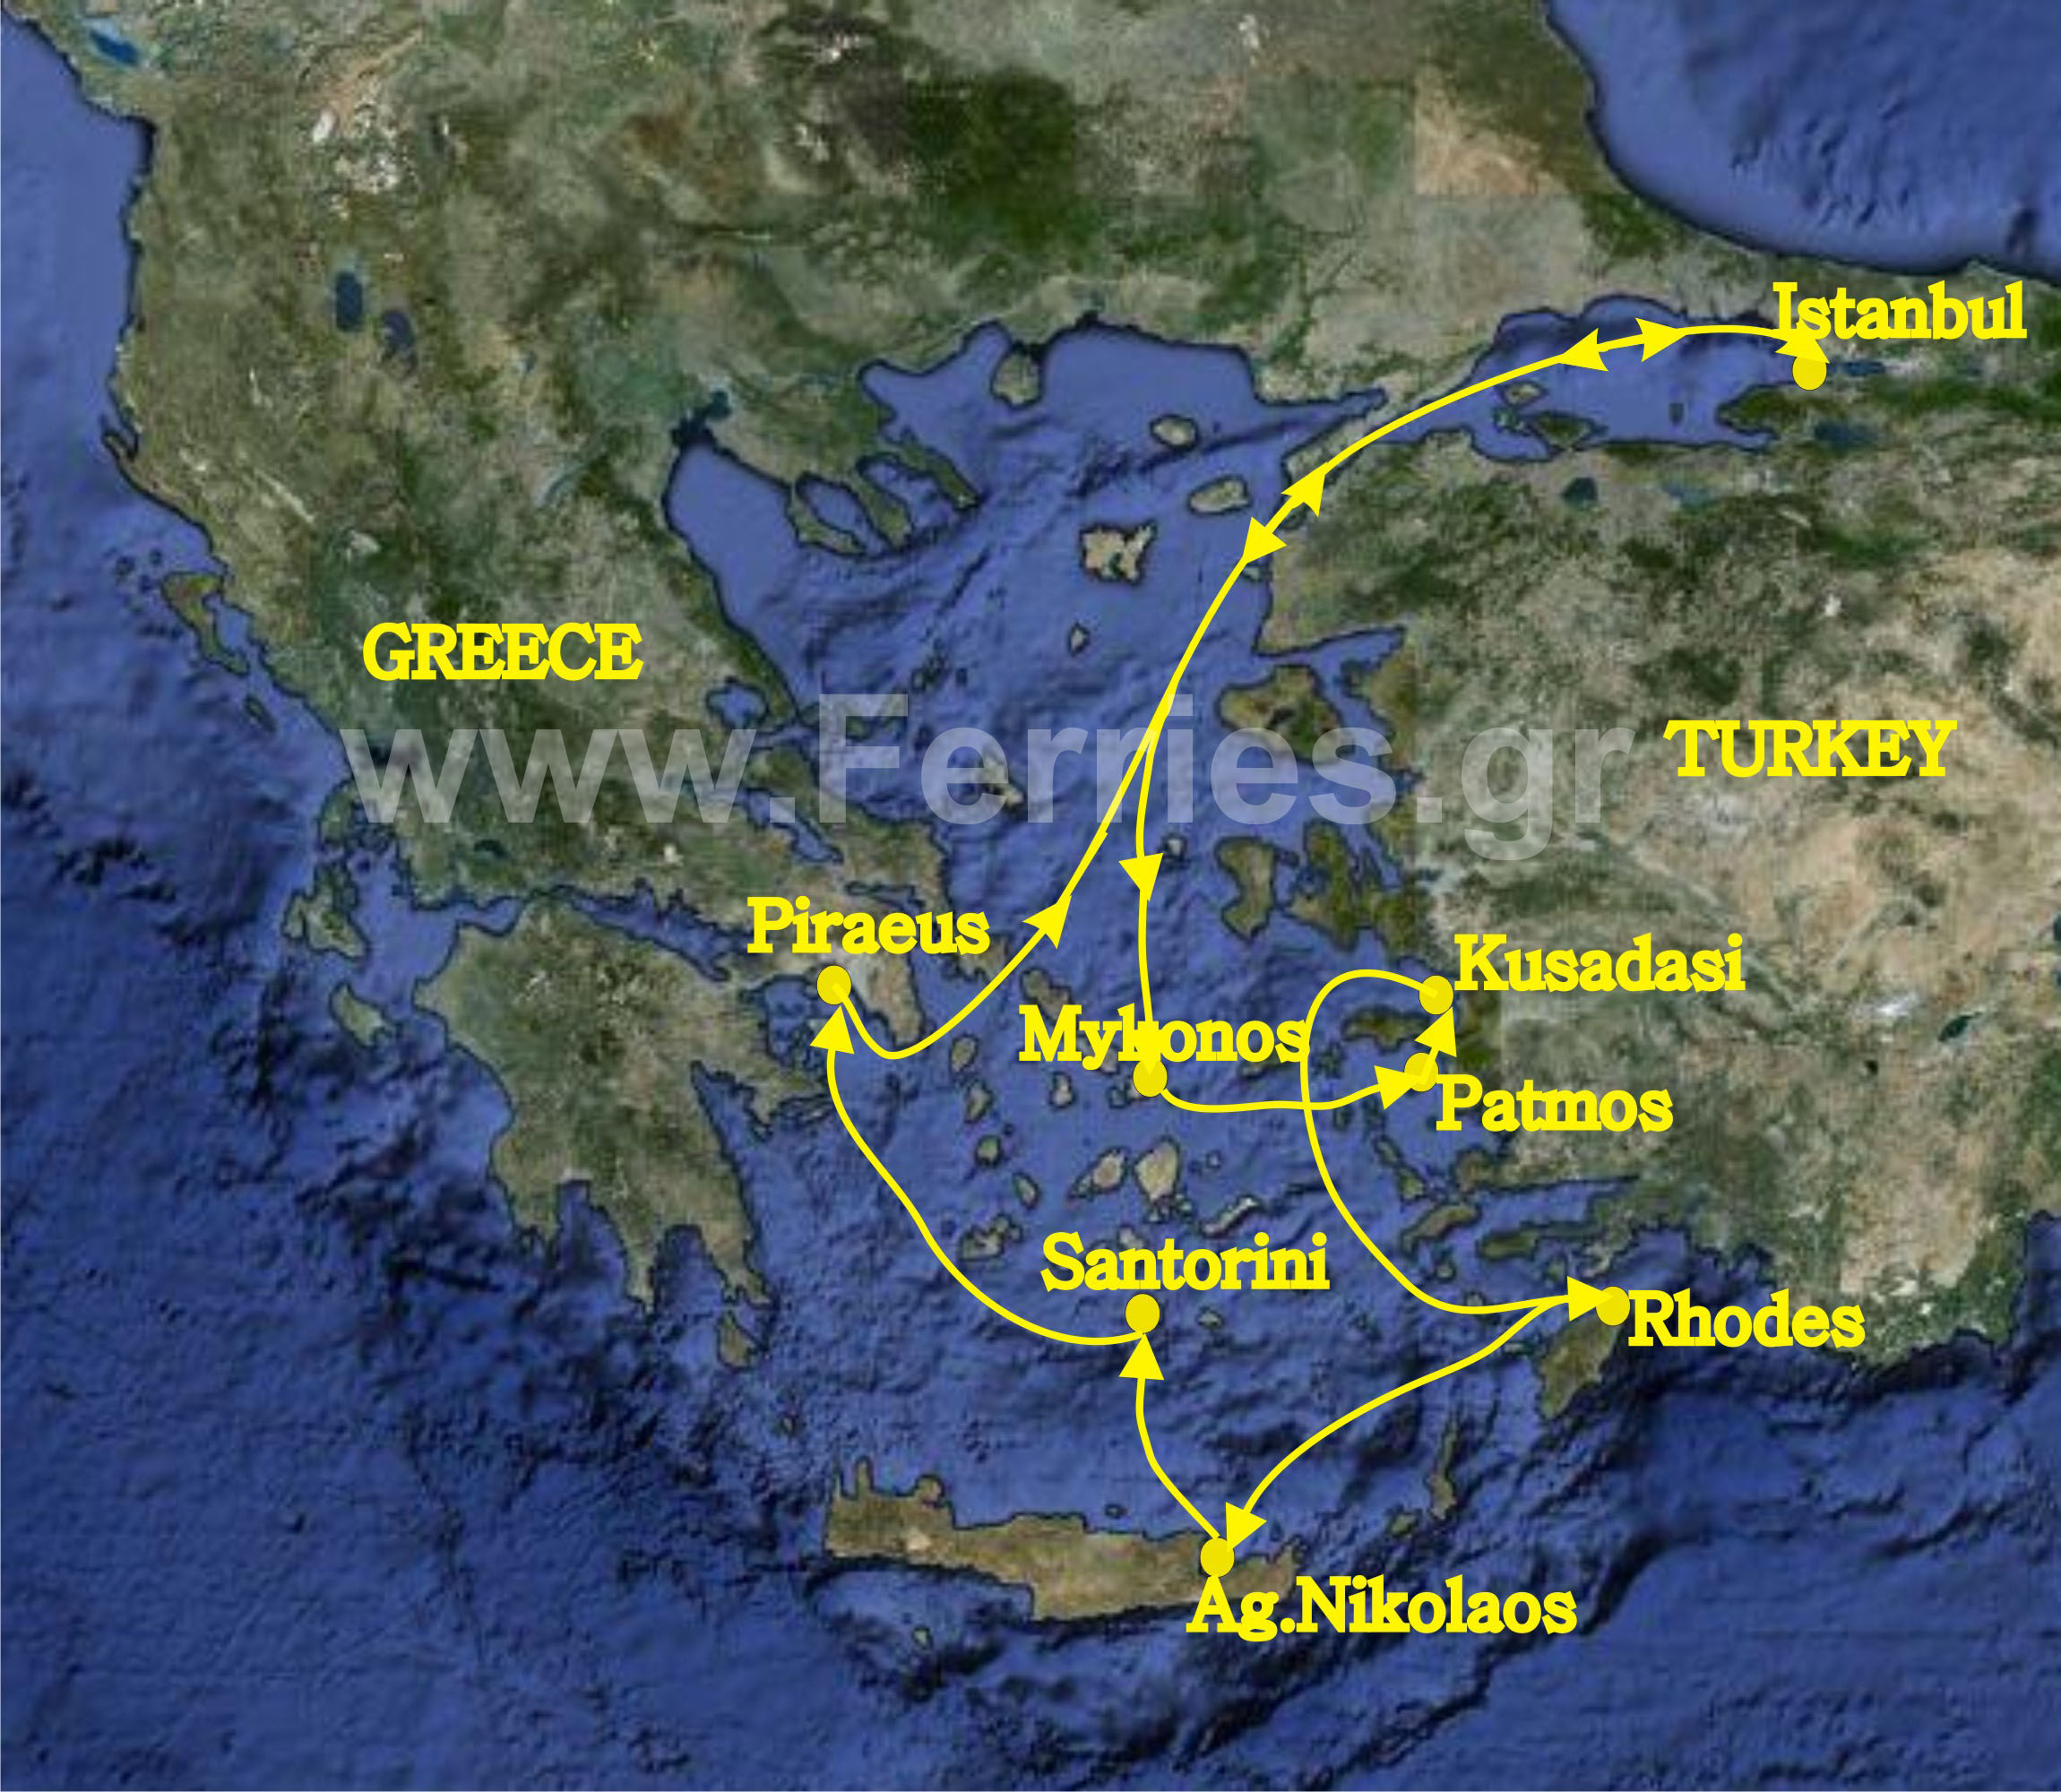 7Day Cruise to Aegean islands and Turkey Departure from Piraeus